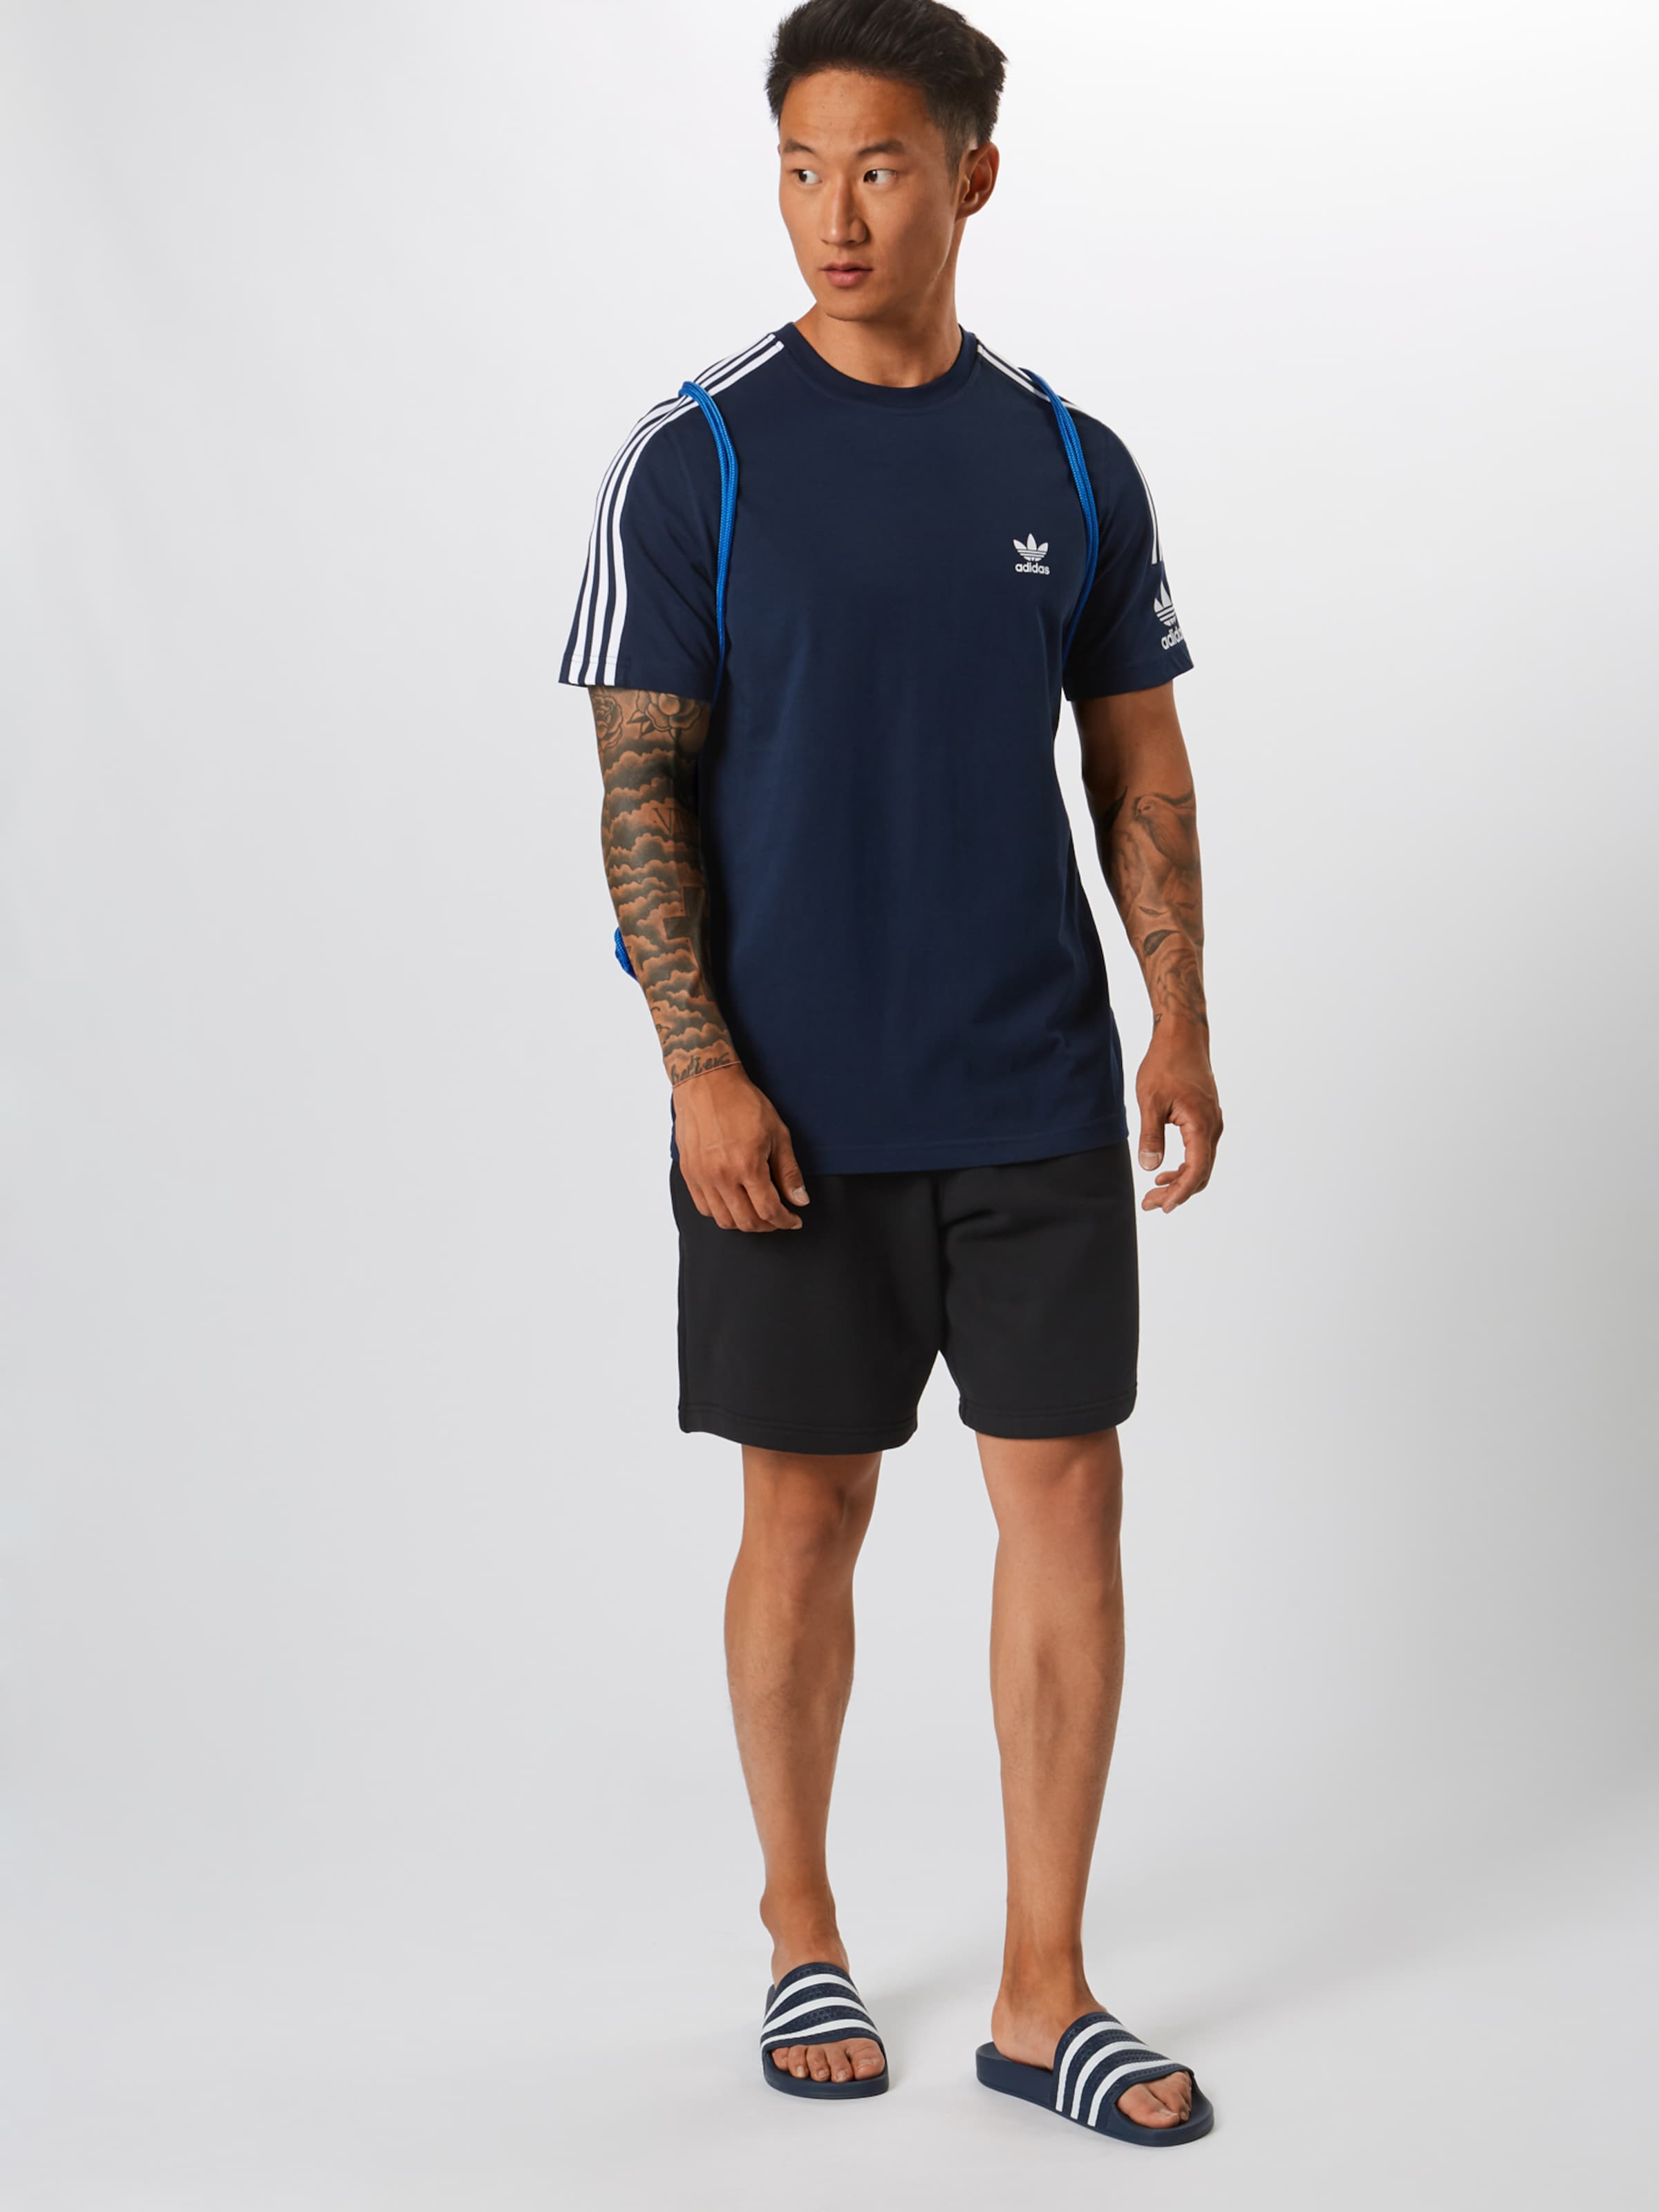 Adidas Up Originals 'lock In Shirt Navy Tee' A354LRj